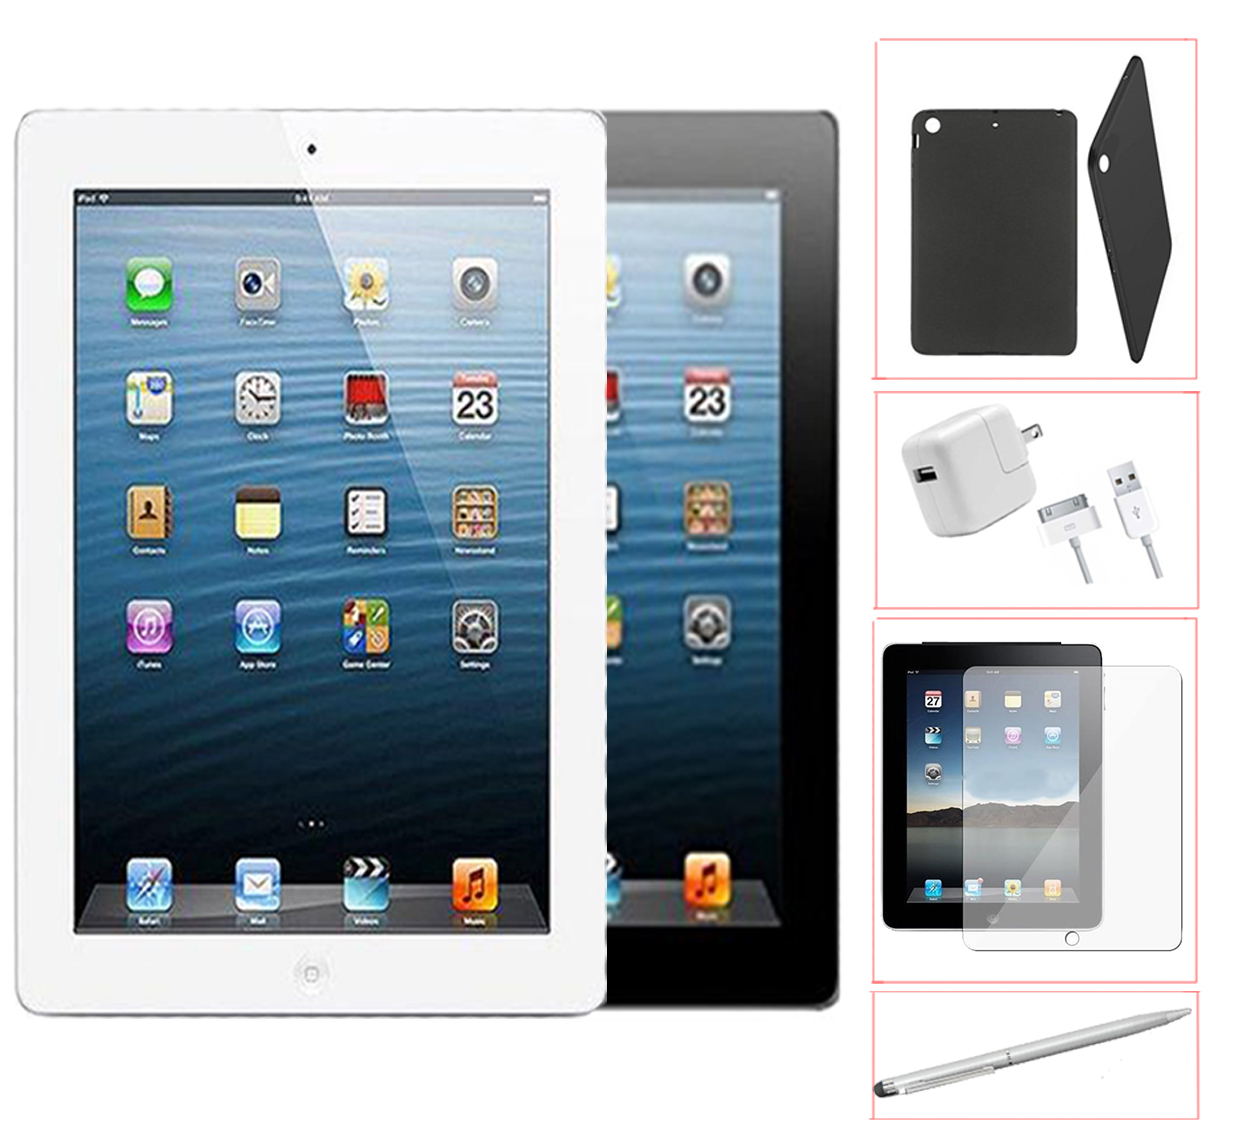 Refurbished Apple iPad 2 16GB Black -WiFi - Bundle - Case, Rapid Charger, Tempered Glass & Stylus Pen